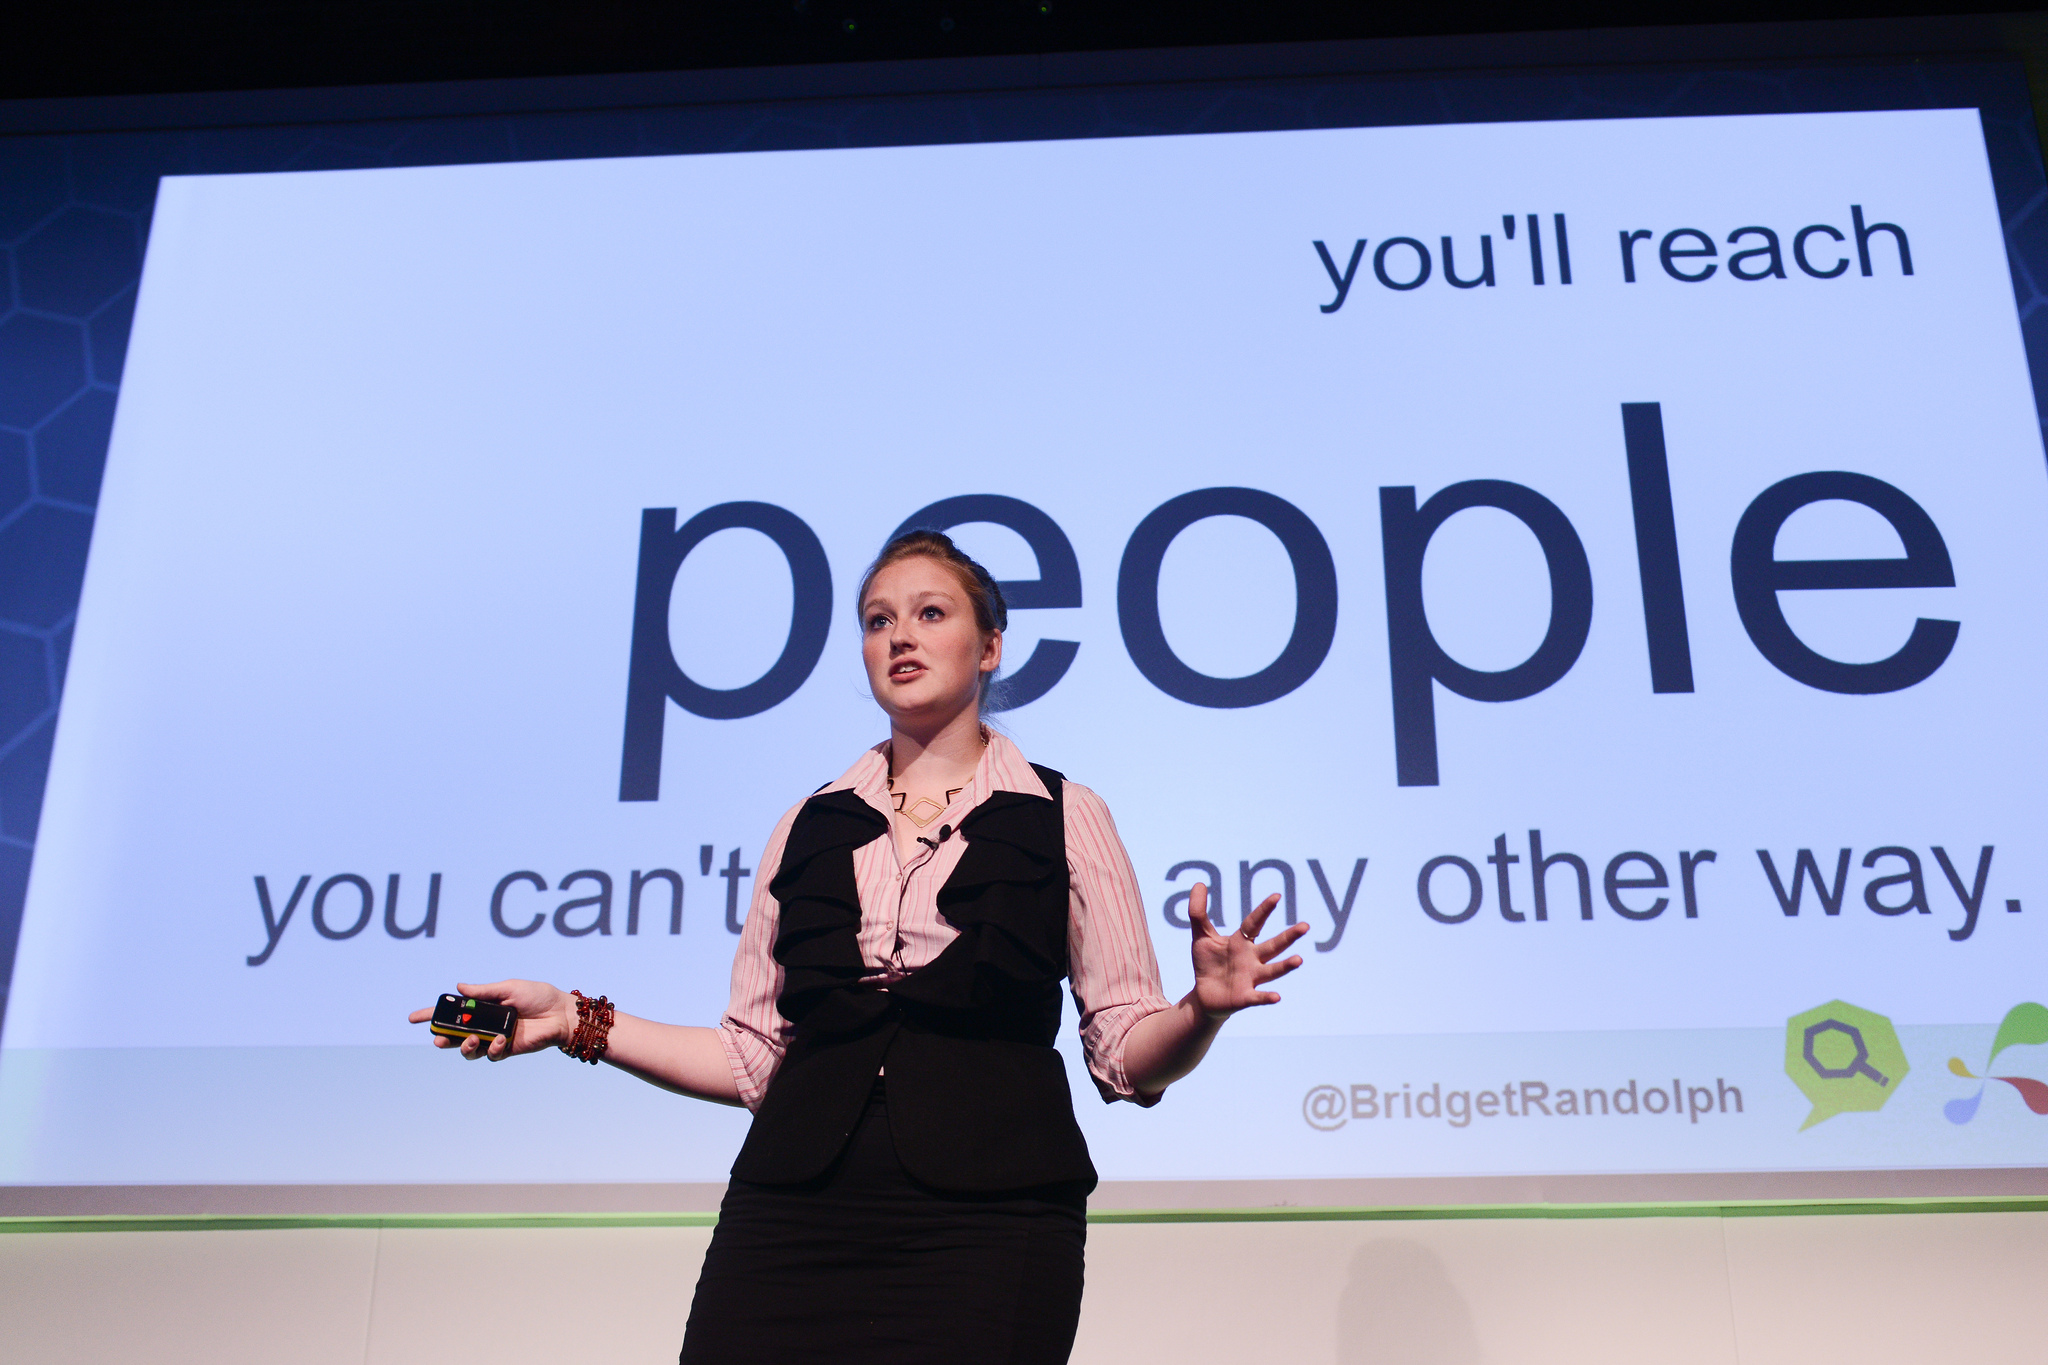 bridget randolph speaker searchlove